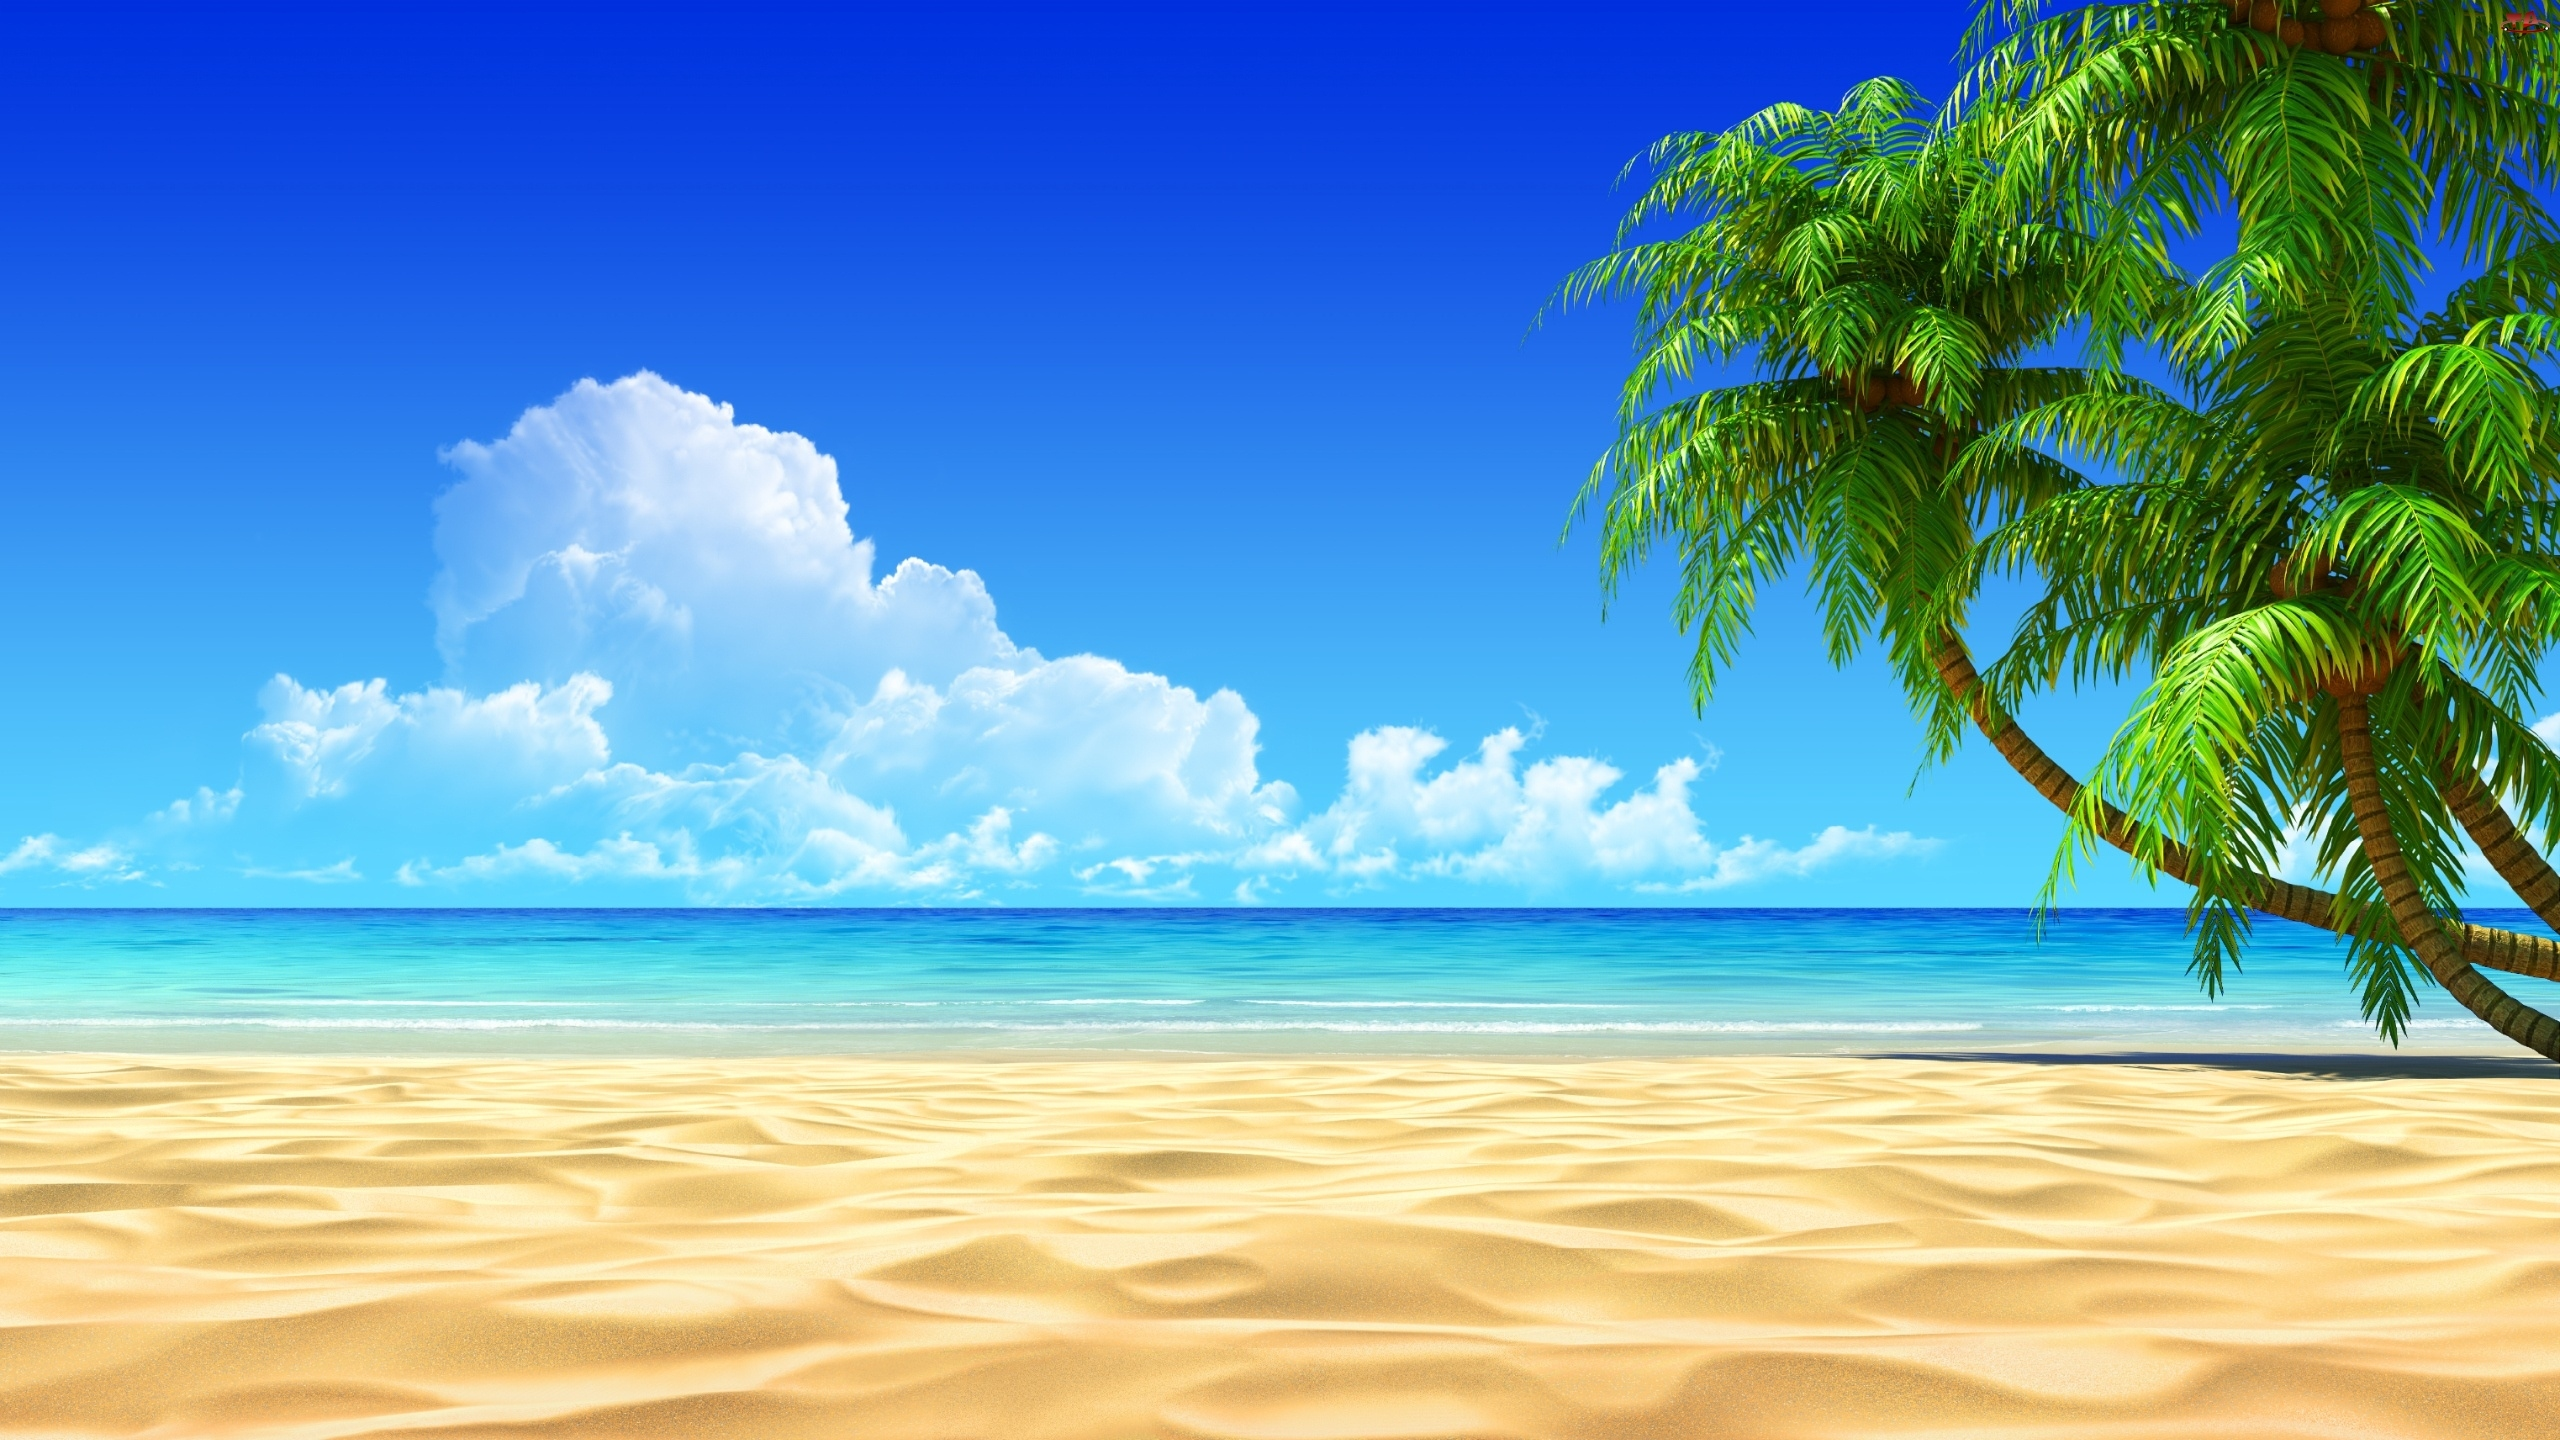 Beach Colour Full Wallpaper Hd 13057 Wallpaper Cool Walldiskpaper 2560x1440